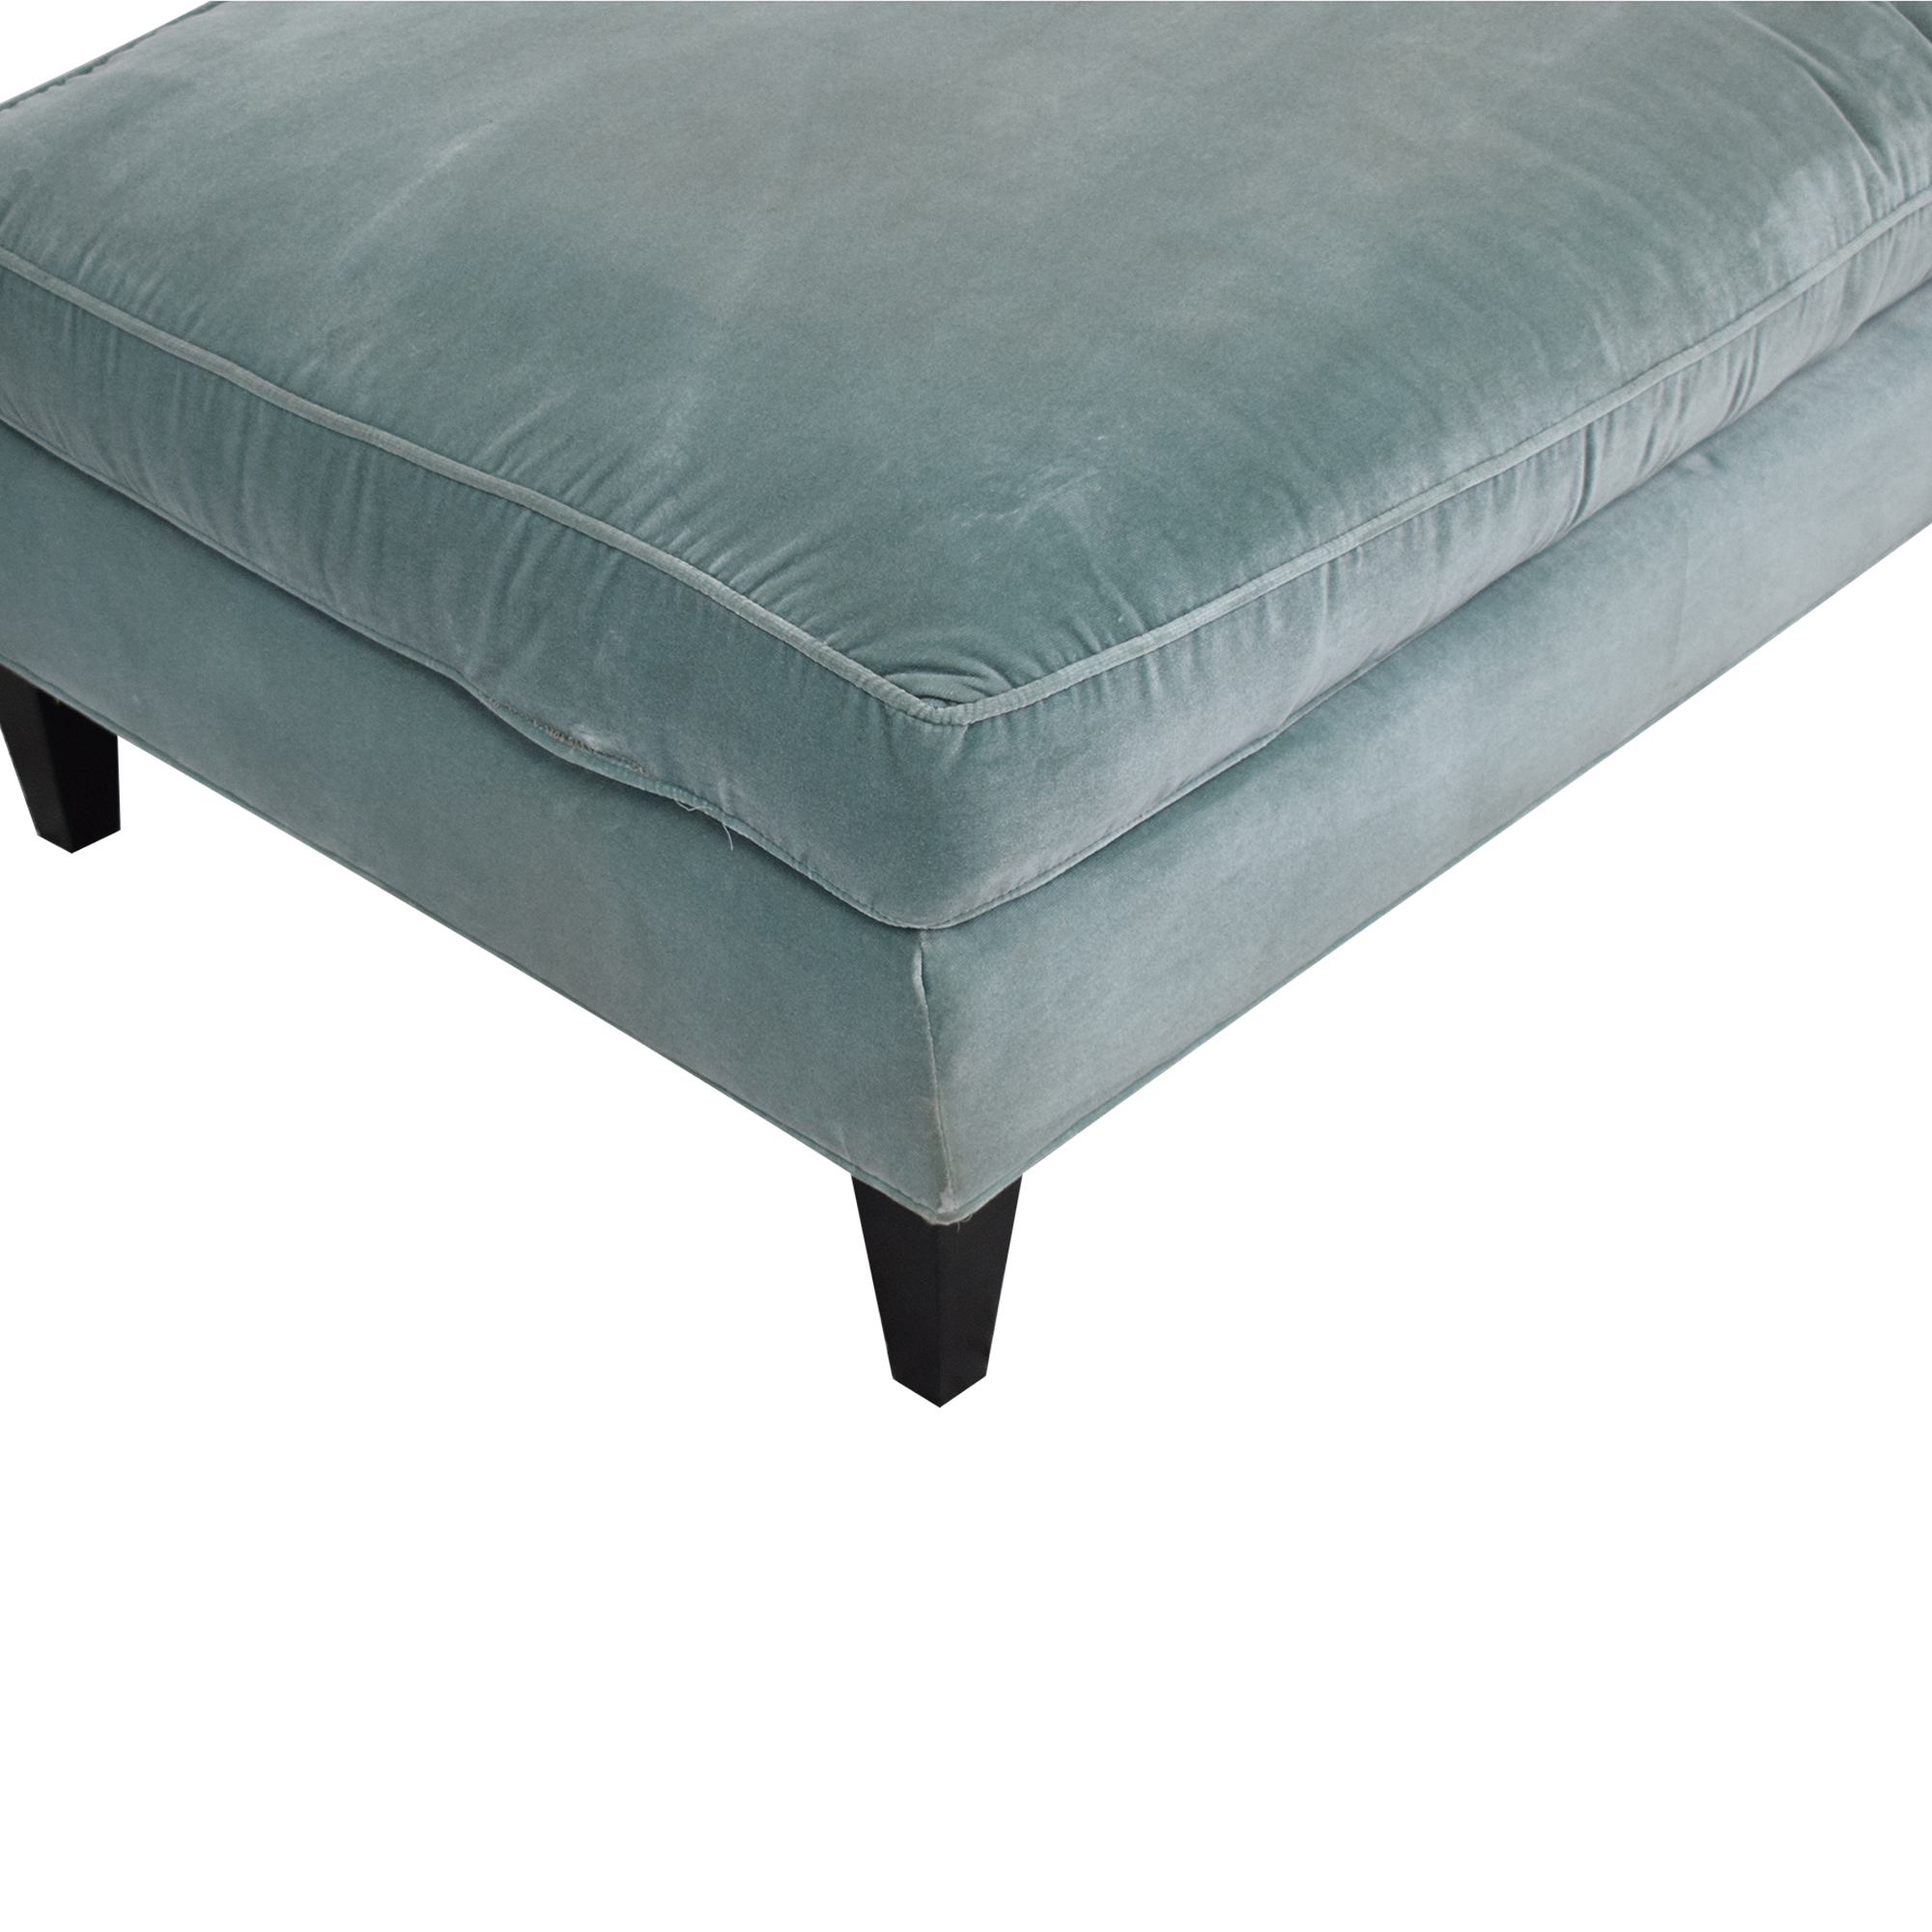 Horchow Horchow Turquoise Chaise Lounge coupon